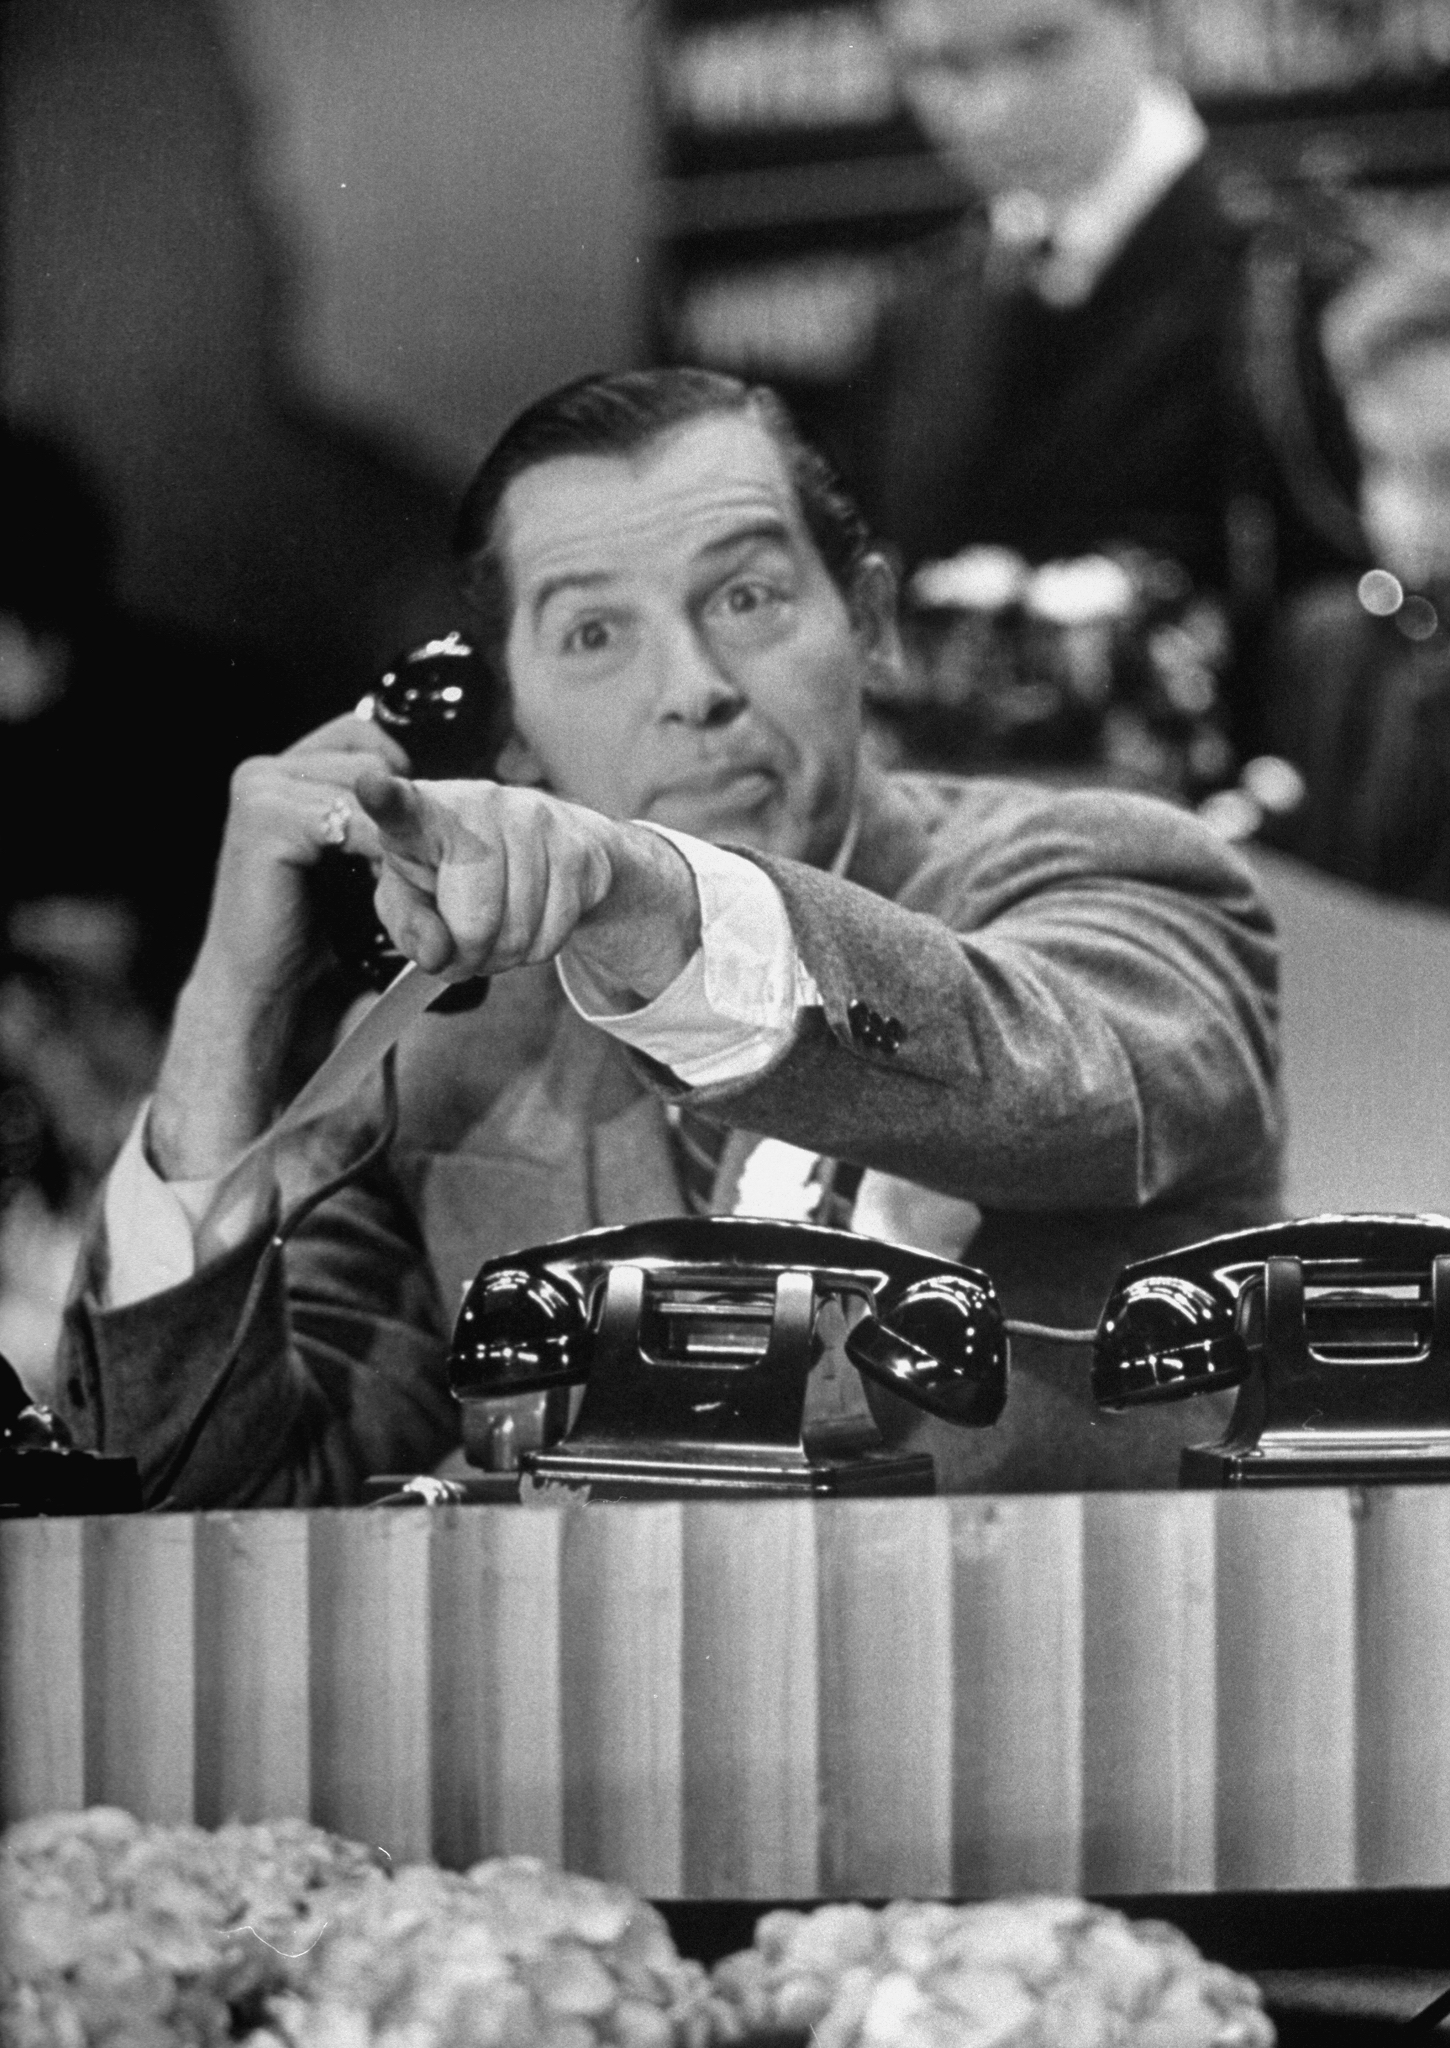 Milton Berle taking a call from a viewer while hosting a fundraiser for the Damon Runyon Memorial Cancer Fund on N.B.C's broadcasting channel.